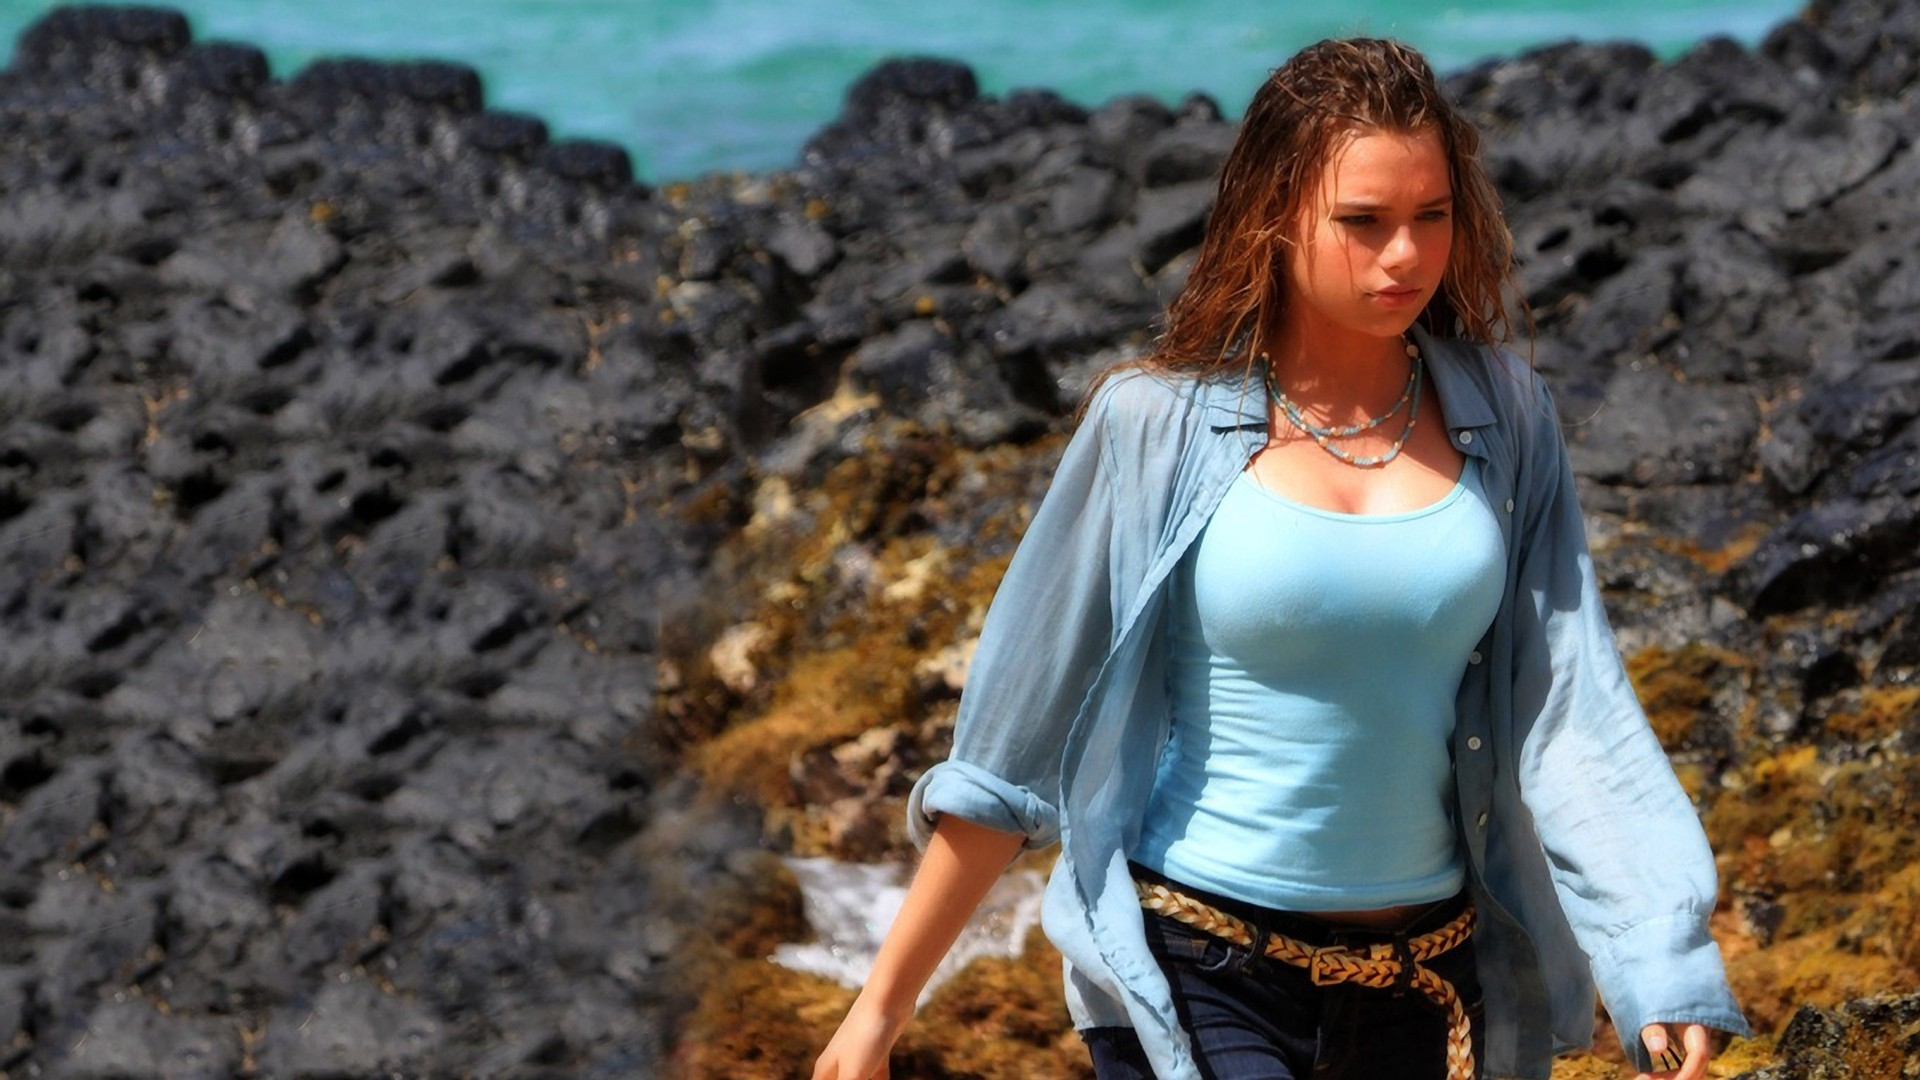 Are Indiana evans hot are